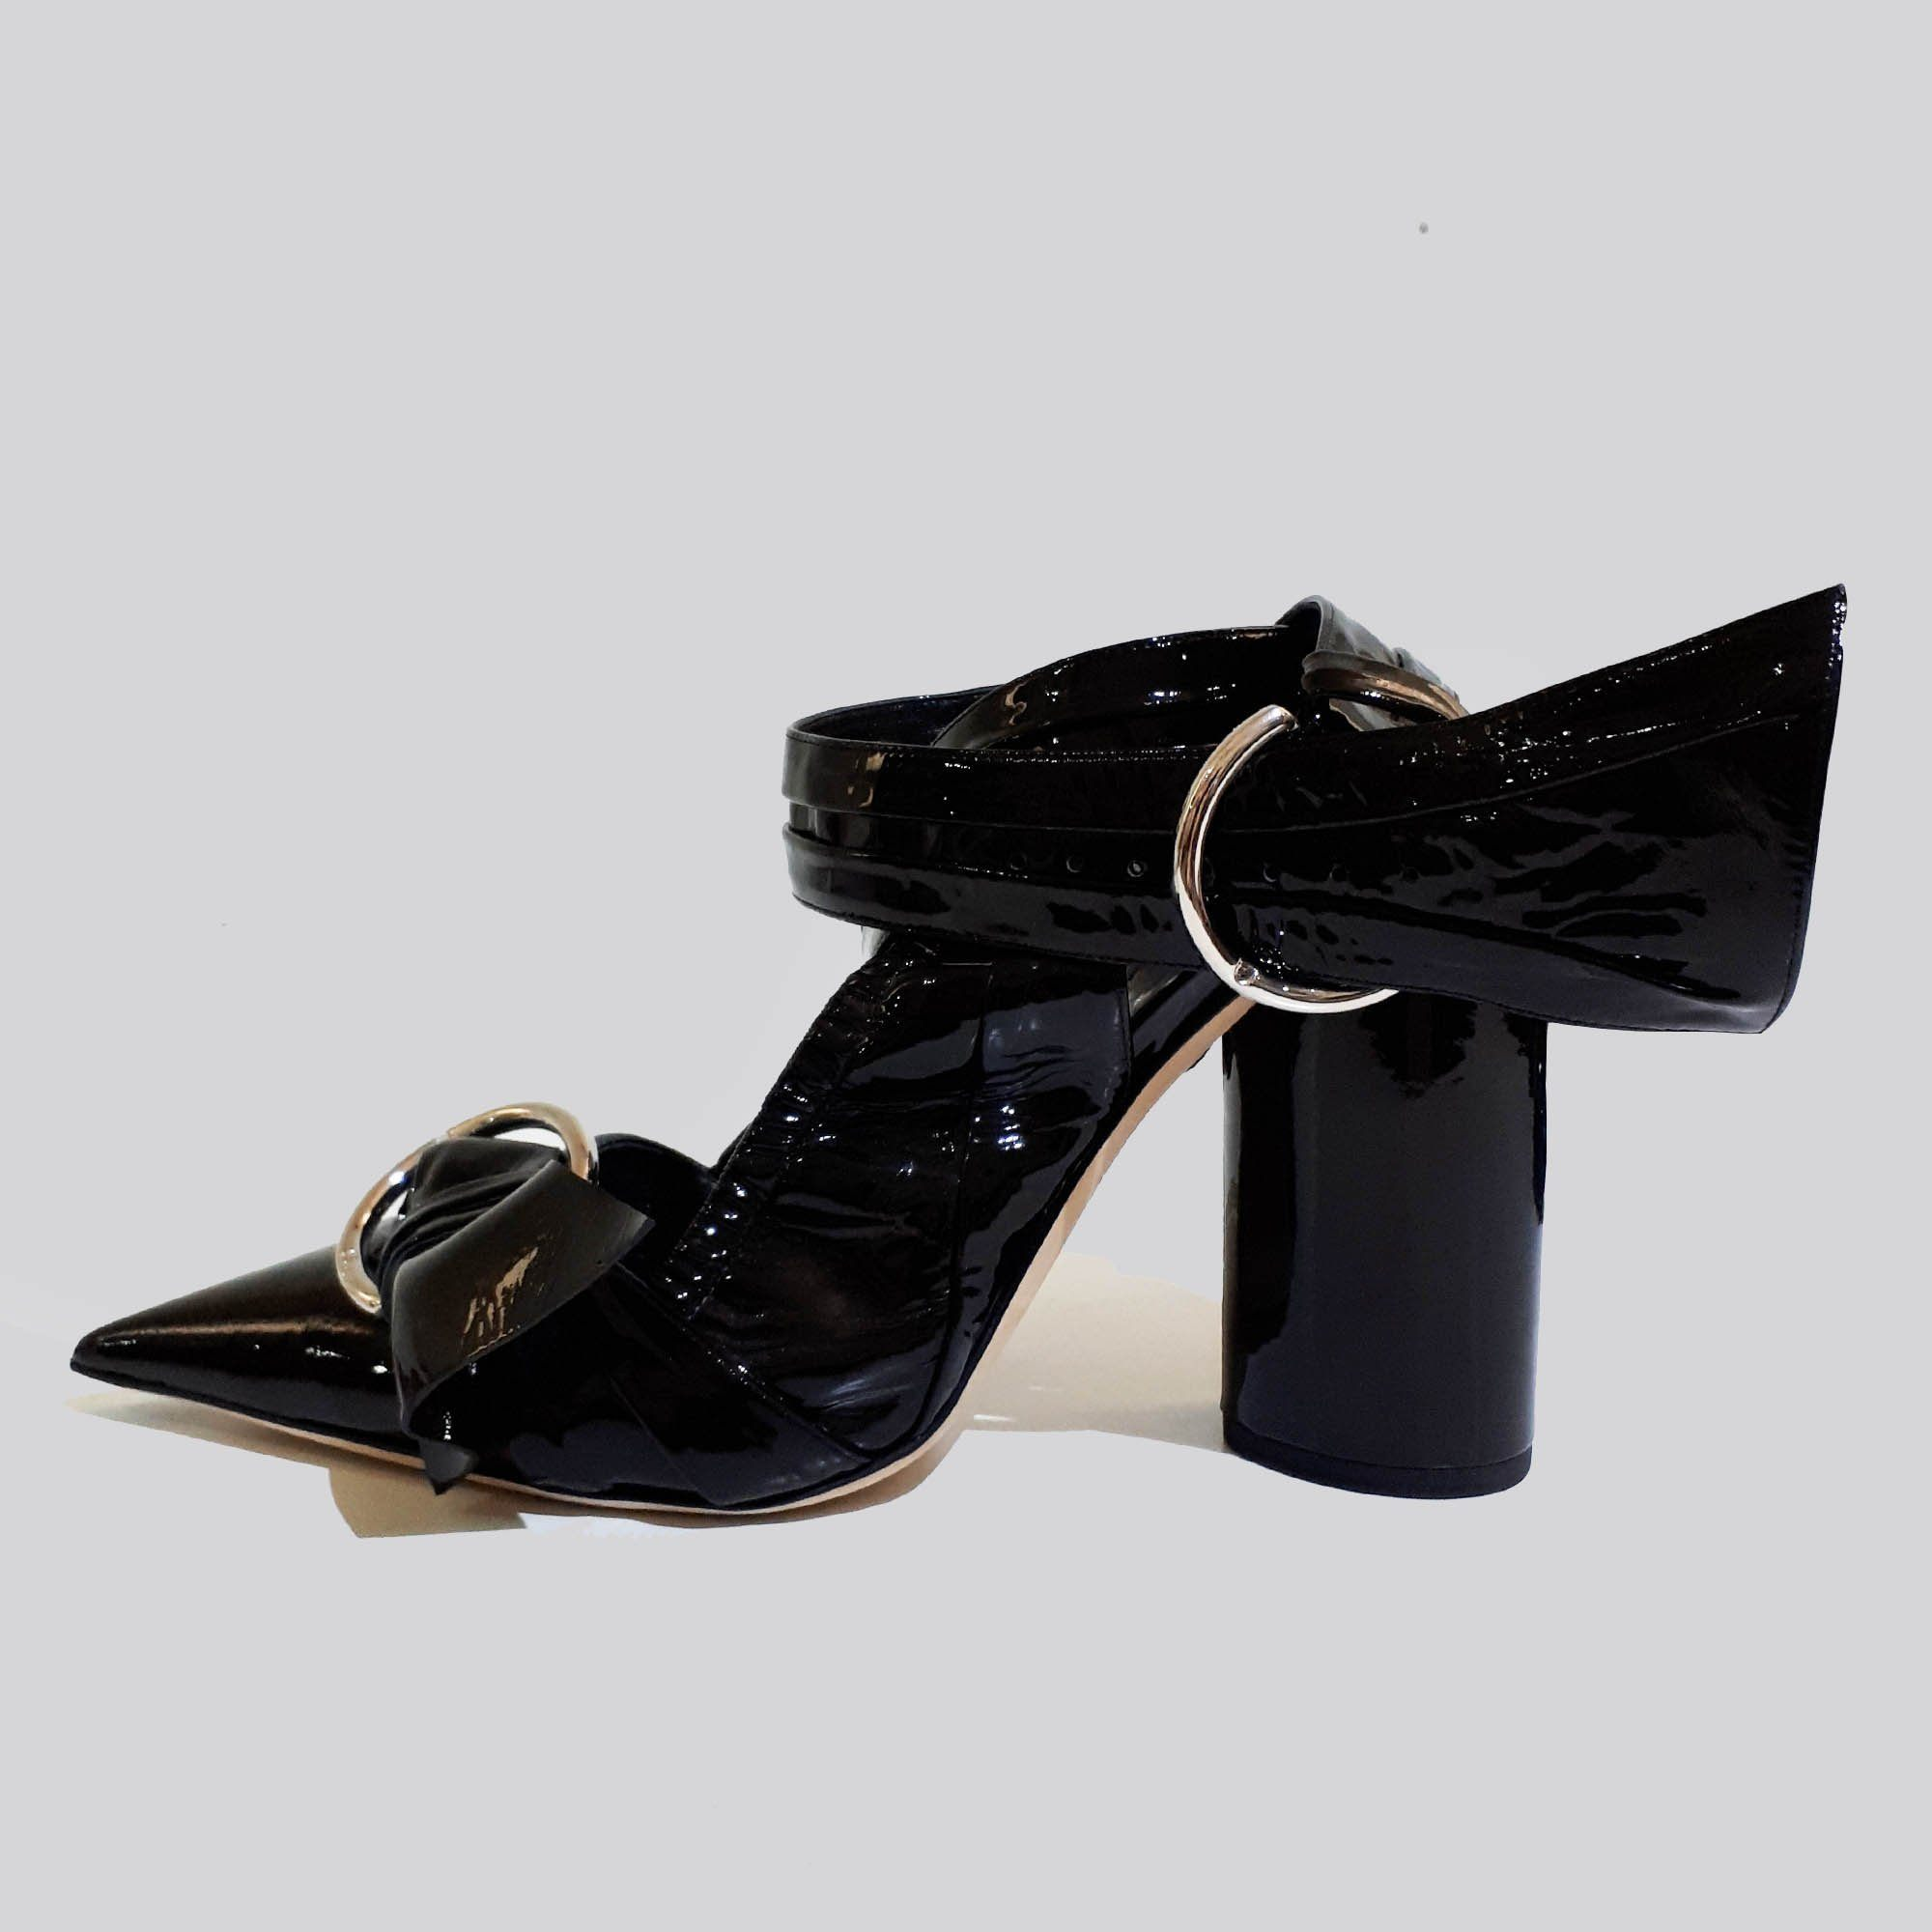 Christian Dior Black Conquest Buckle Pumps